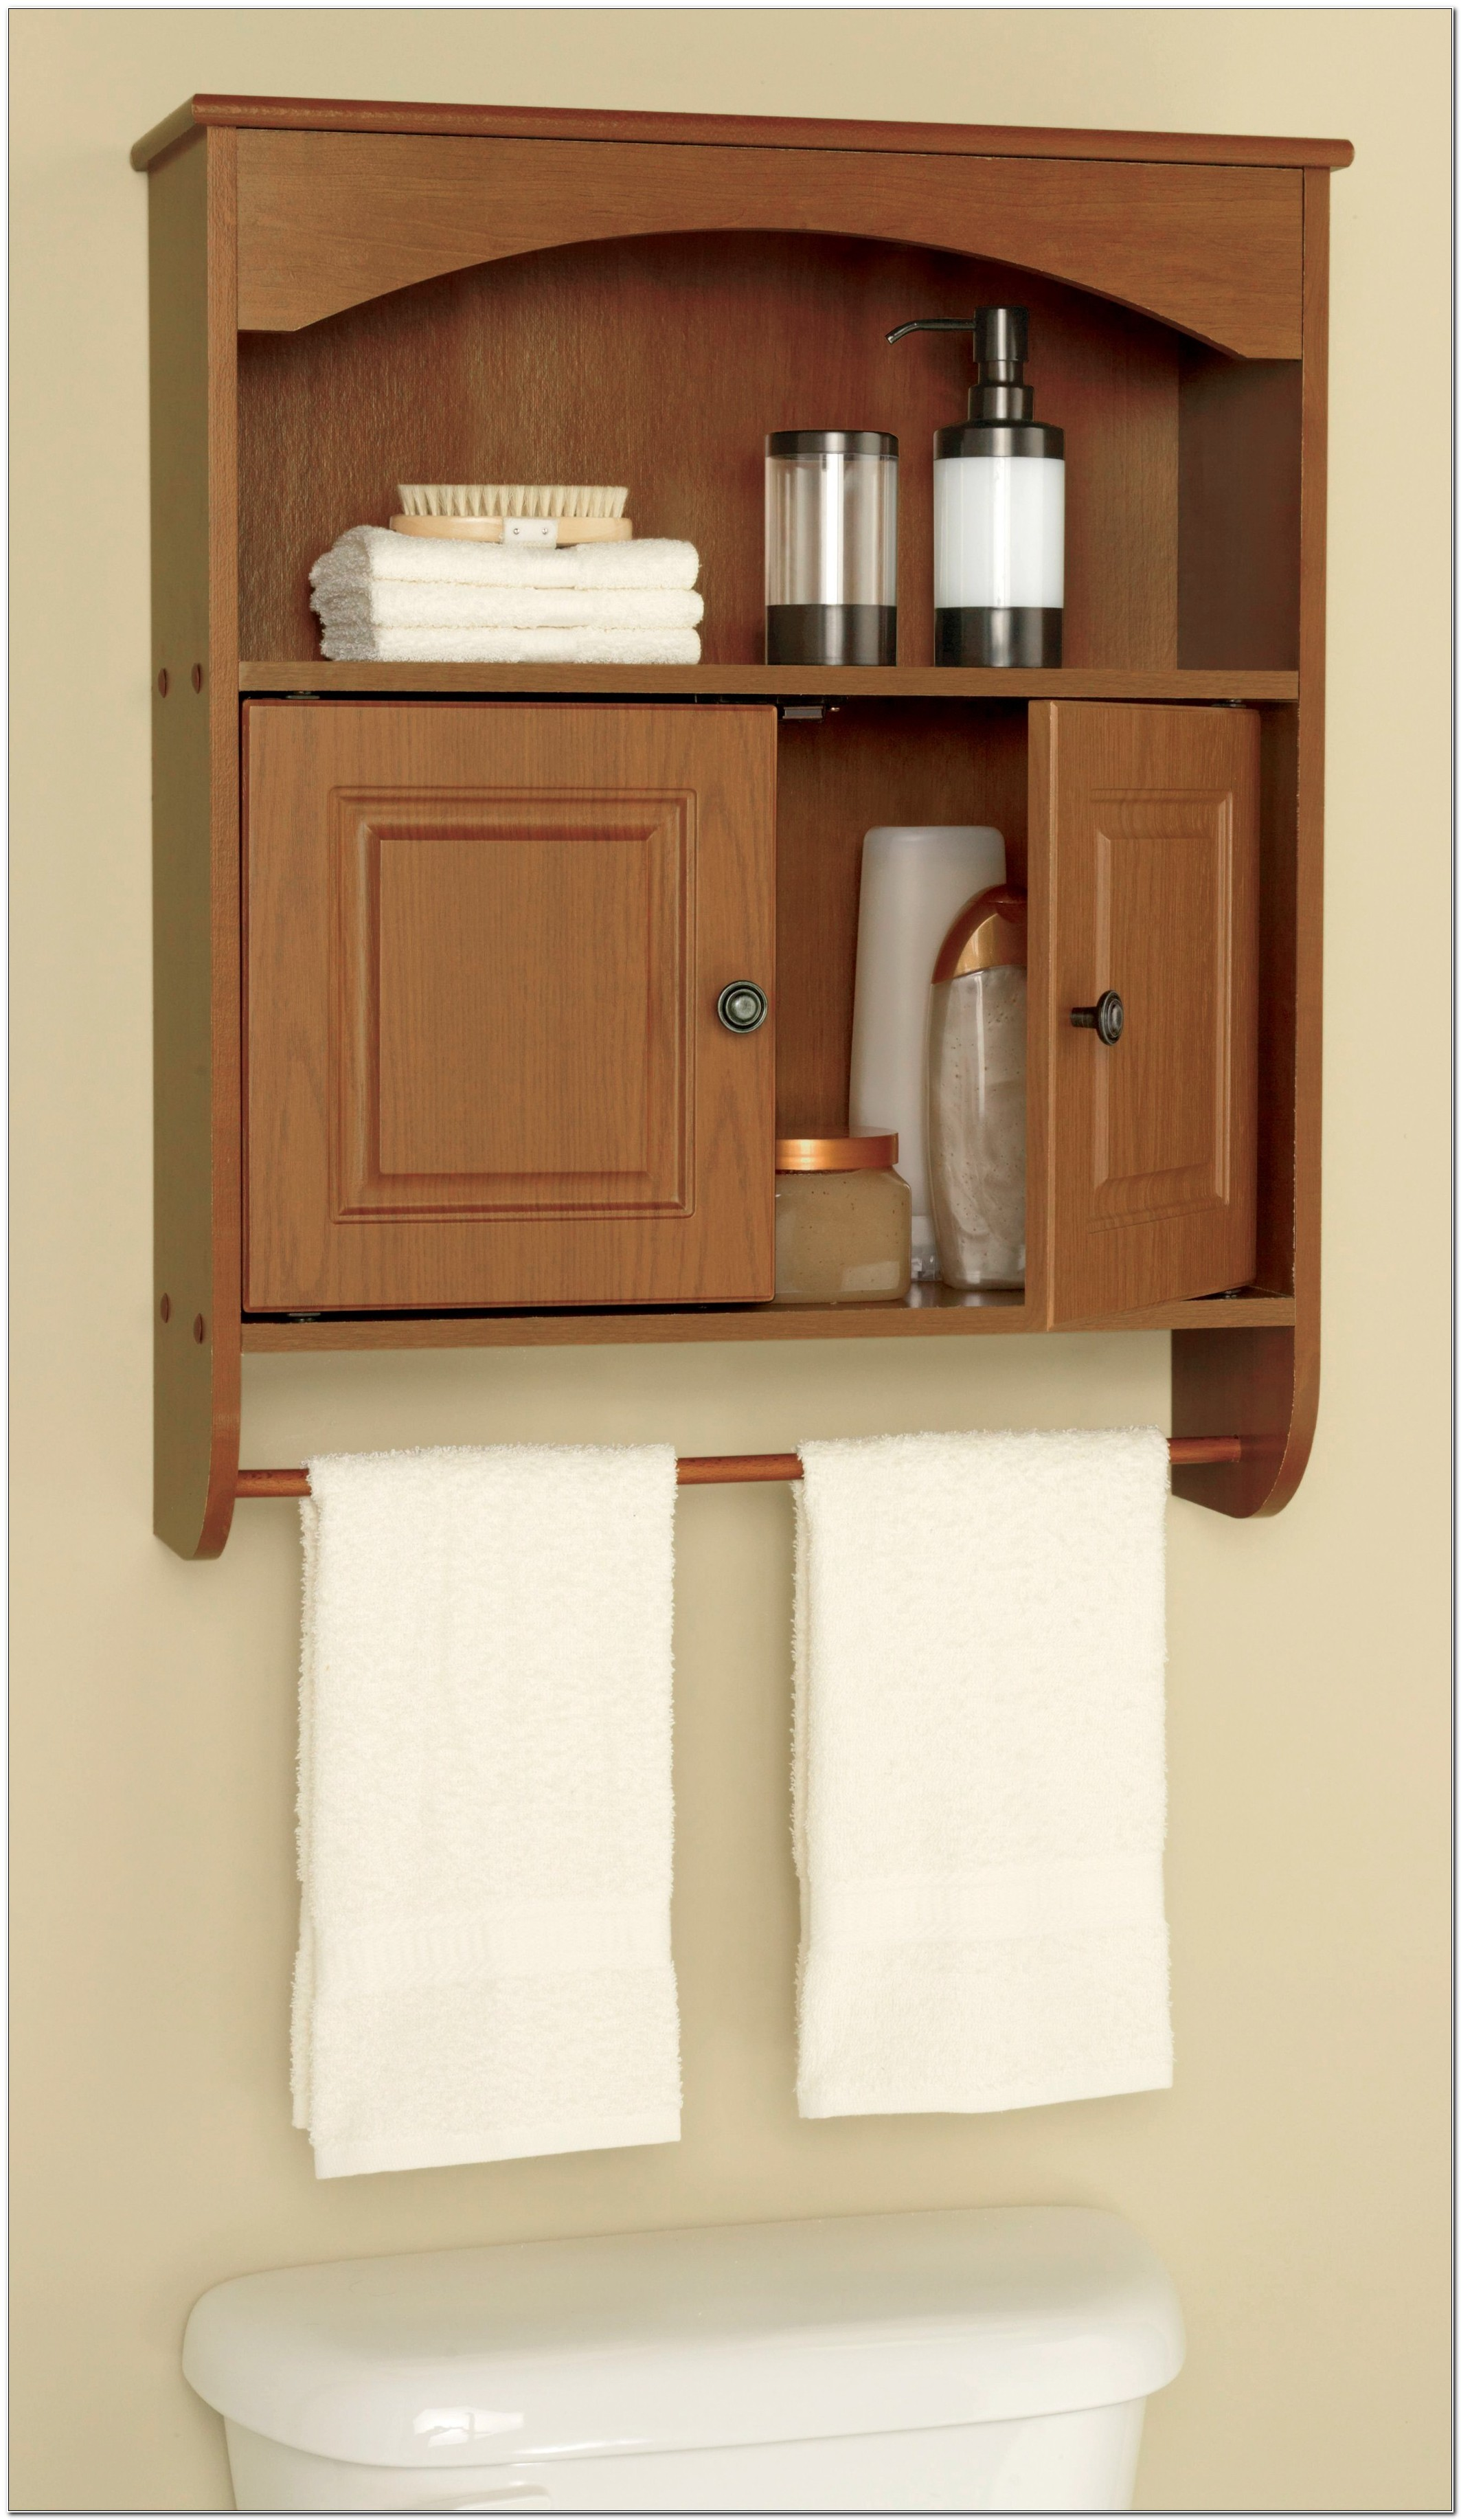 Freestanding Bathroom Cabinet With Towel Rail